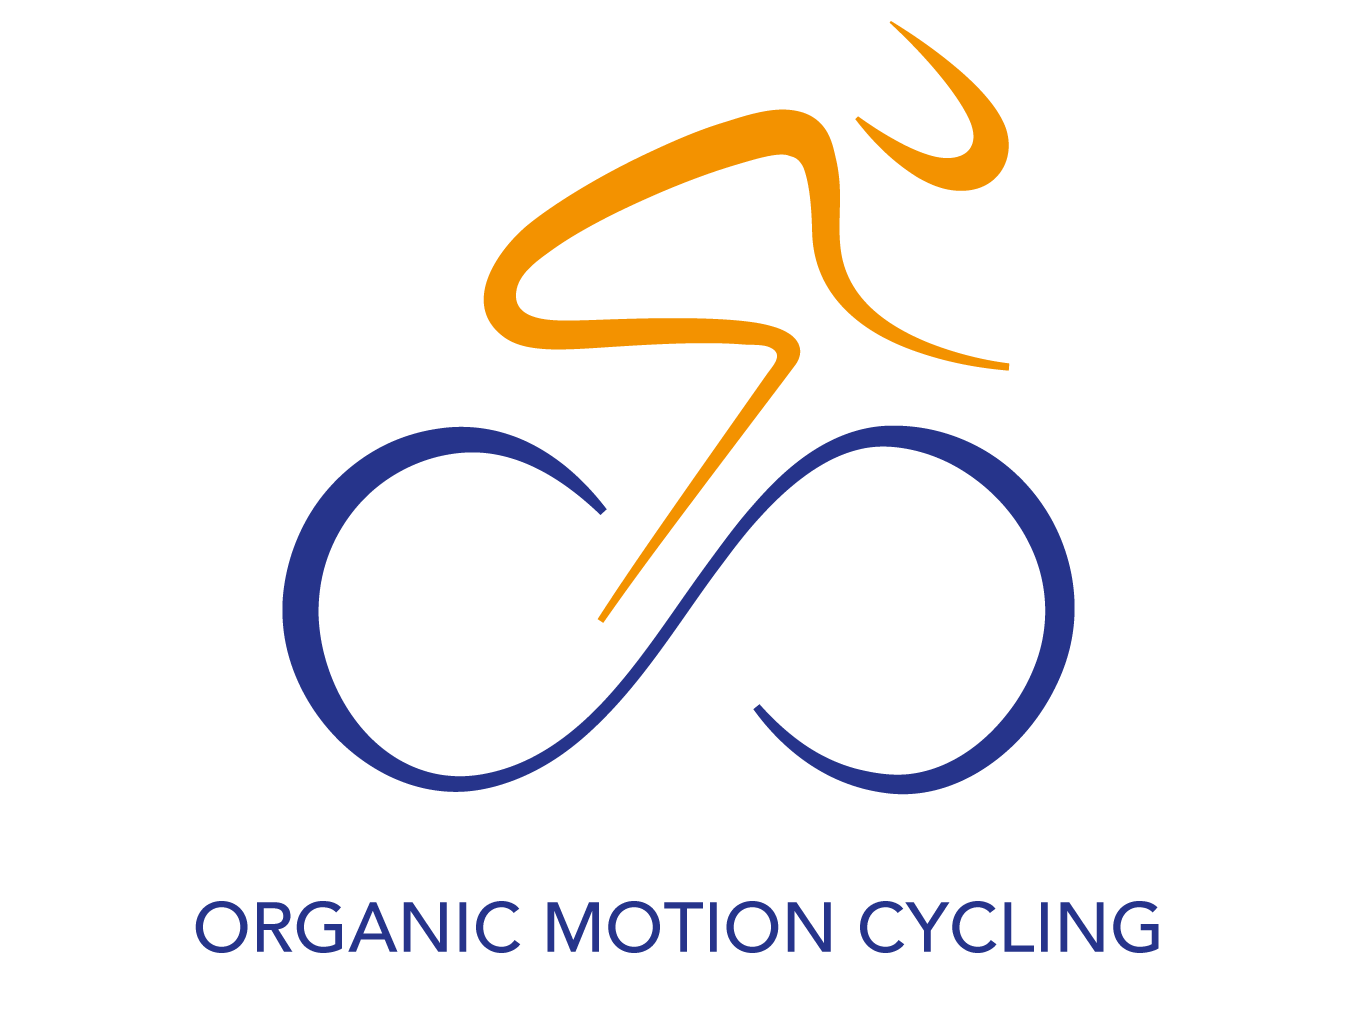 Organic Motion Cycling